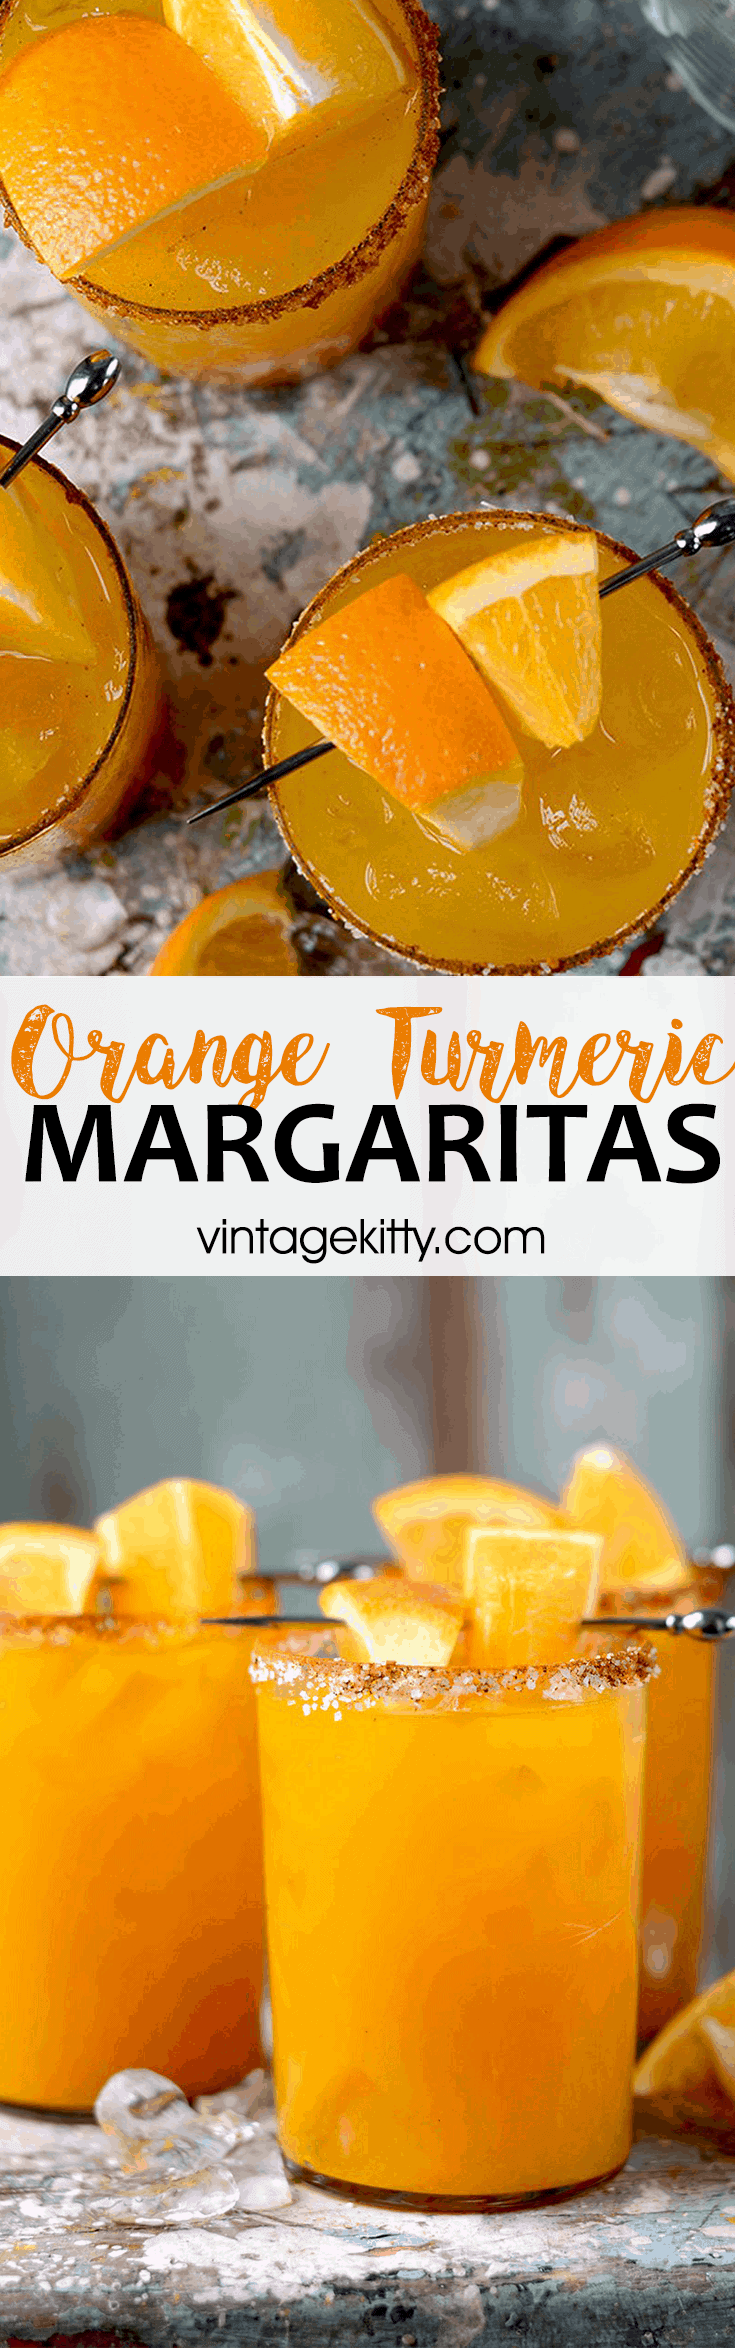 Orange Turmeric Margaritas Pin - Orange Turmeric Margaritas